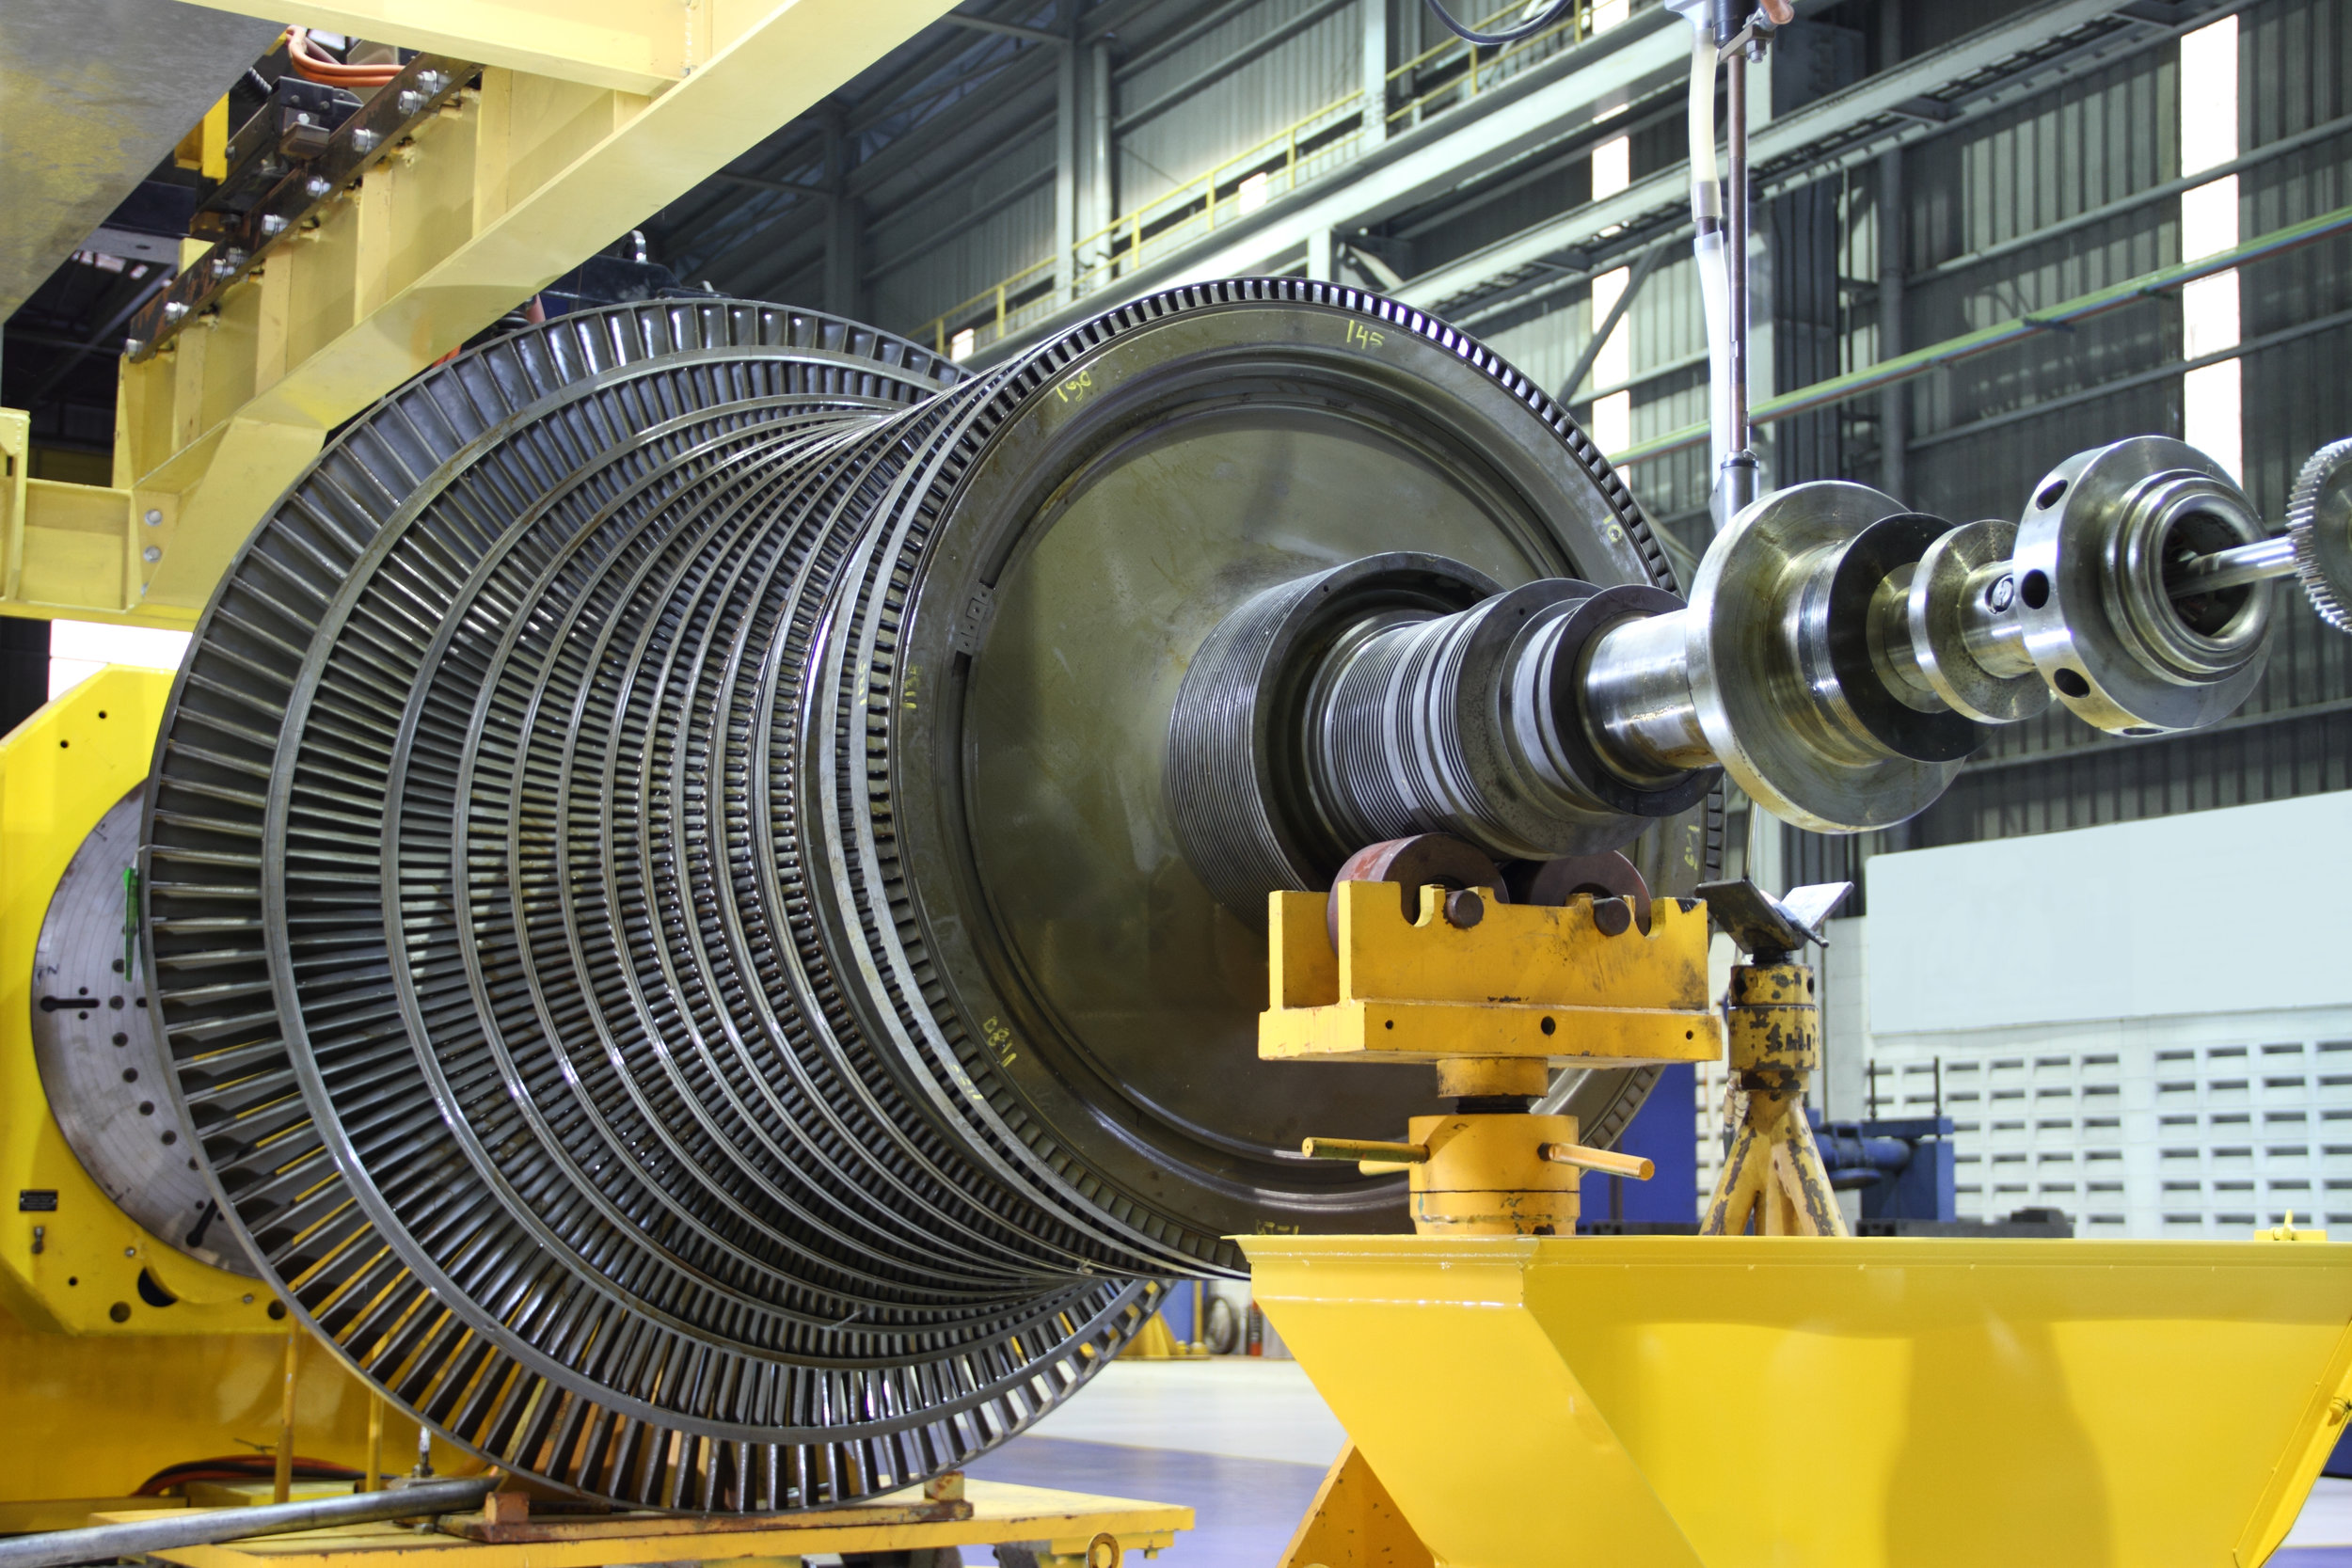 Heavy Equipment + Machinery - Providing exceptional vibration isolation and damping for applications demanding extreme service life in harsh environments.